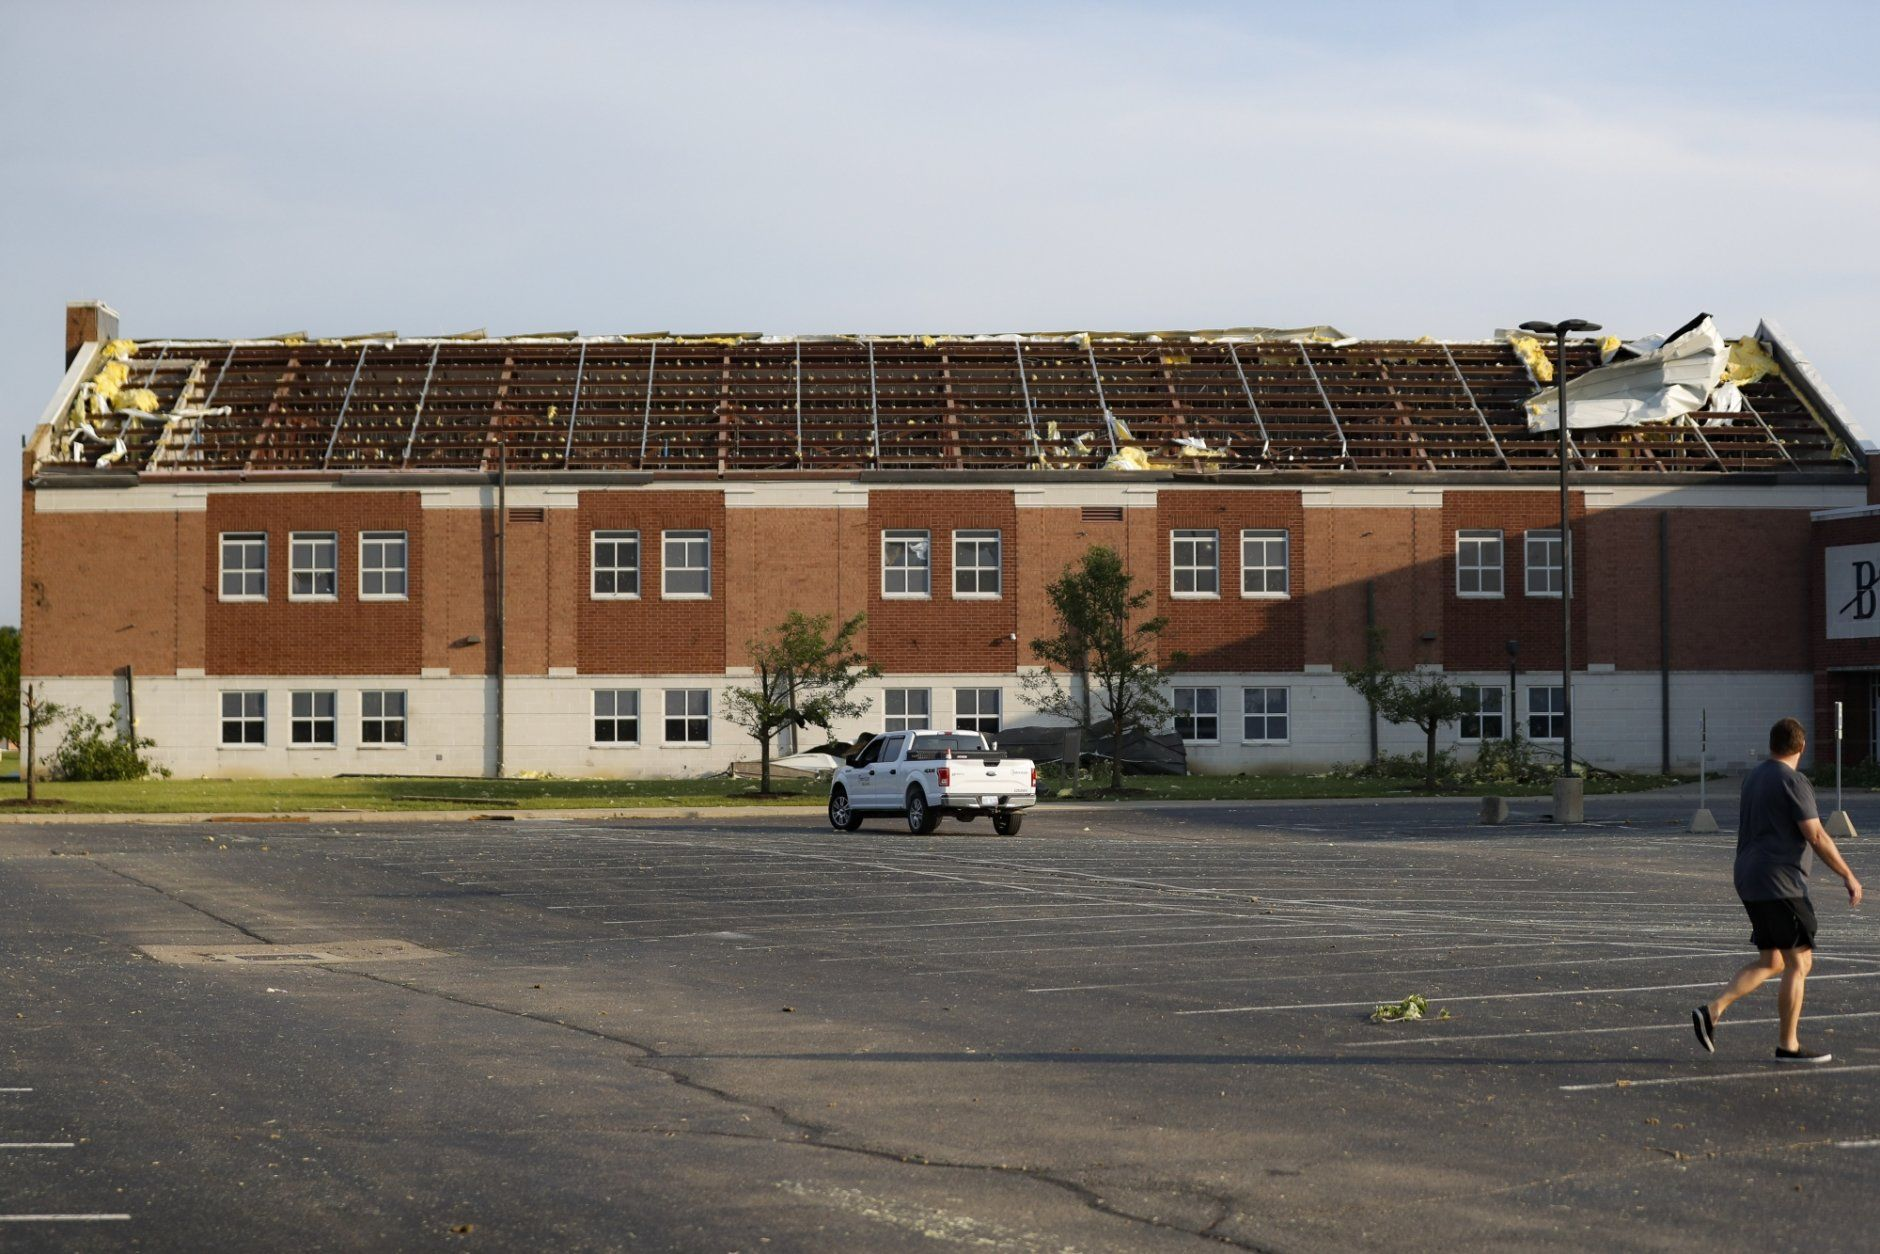 A section of roof remains torn from Brookville High School after a tornado hit the area the previous evening, Tuesday, May 28, 2019, in Brookville, Ohio.  (AP Photo/John Minchillo)